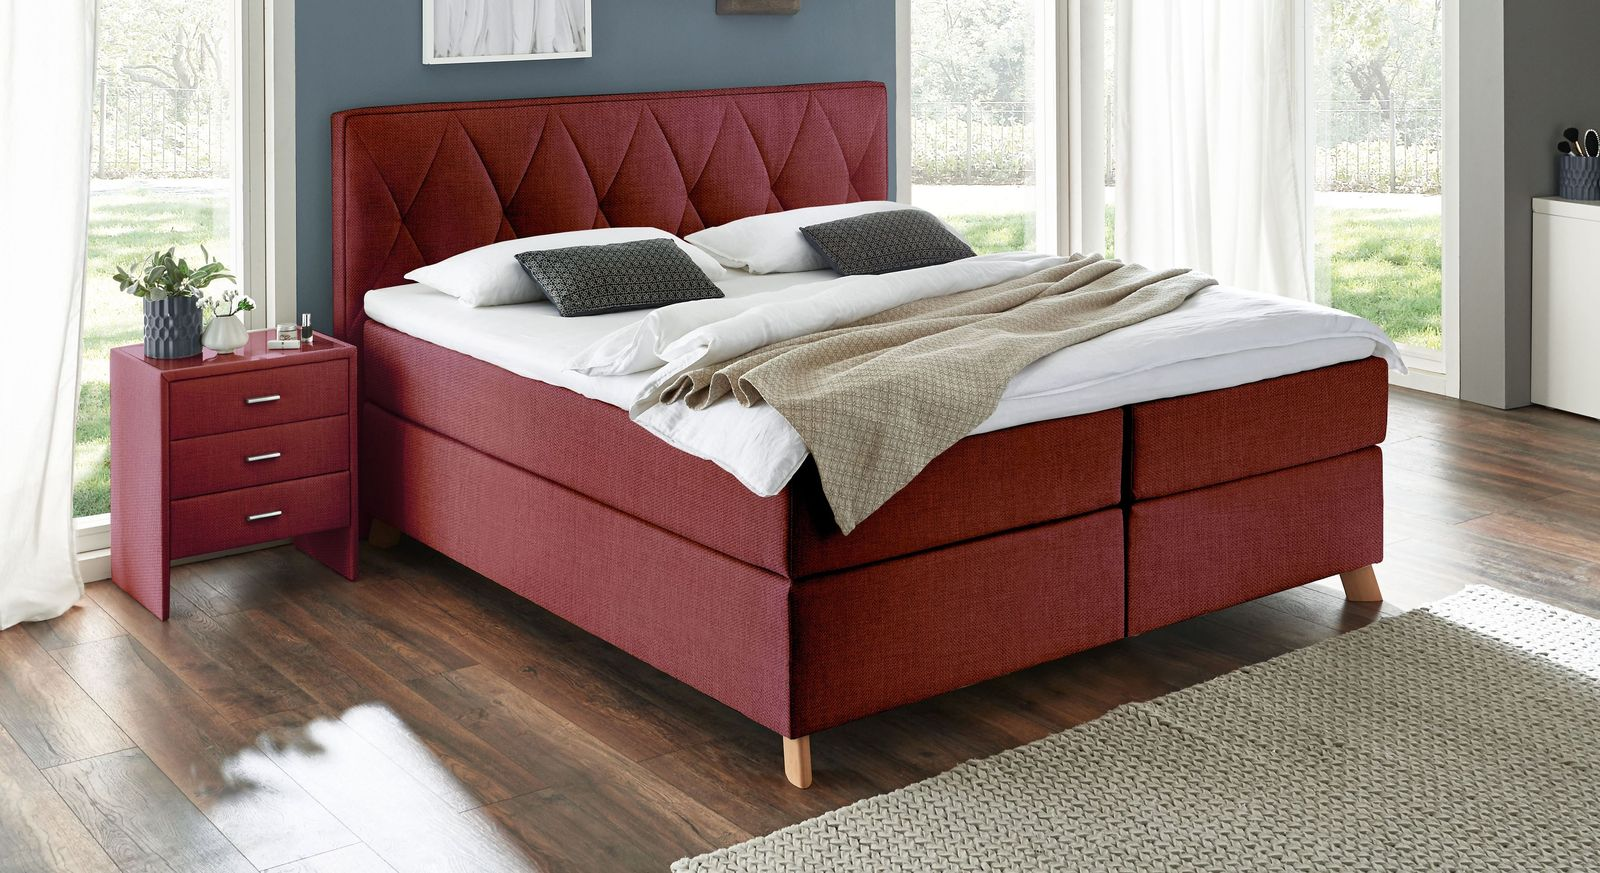 Rotes Boxspringbett Allentown in 66 cm Komforthöhe